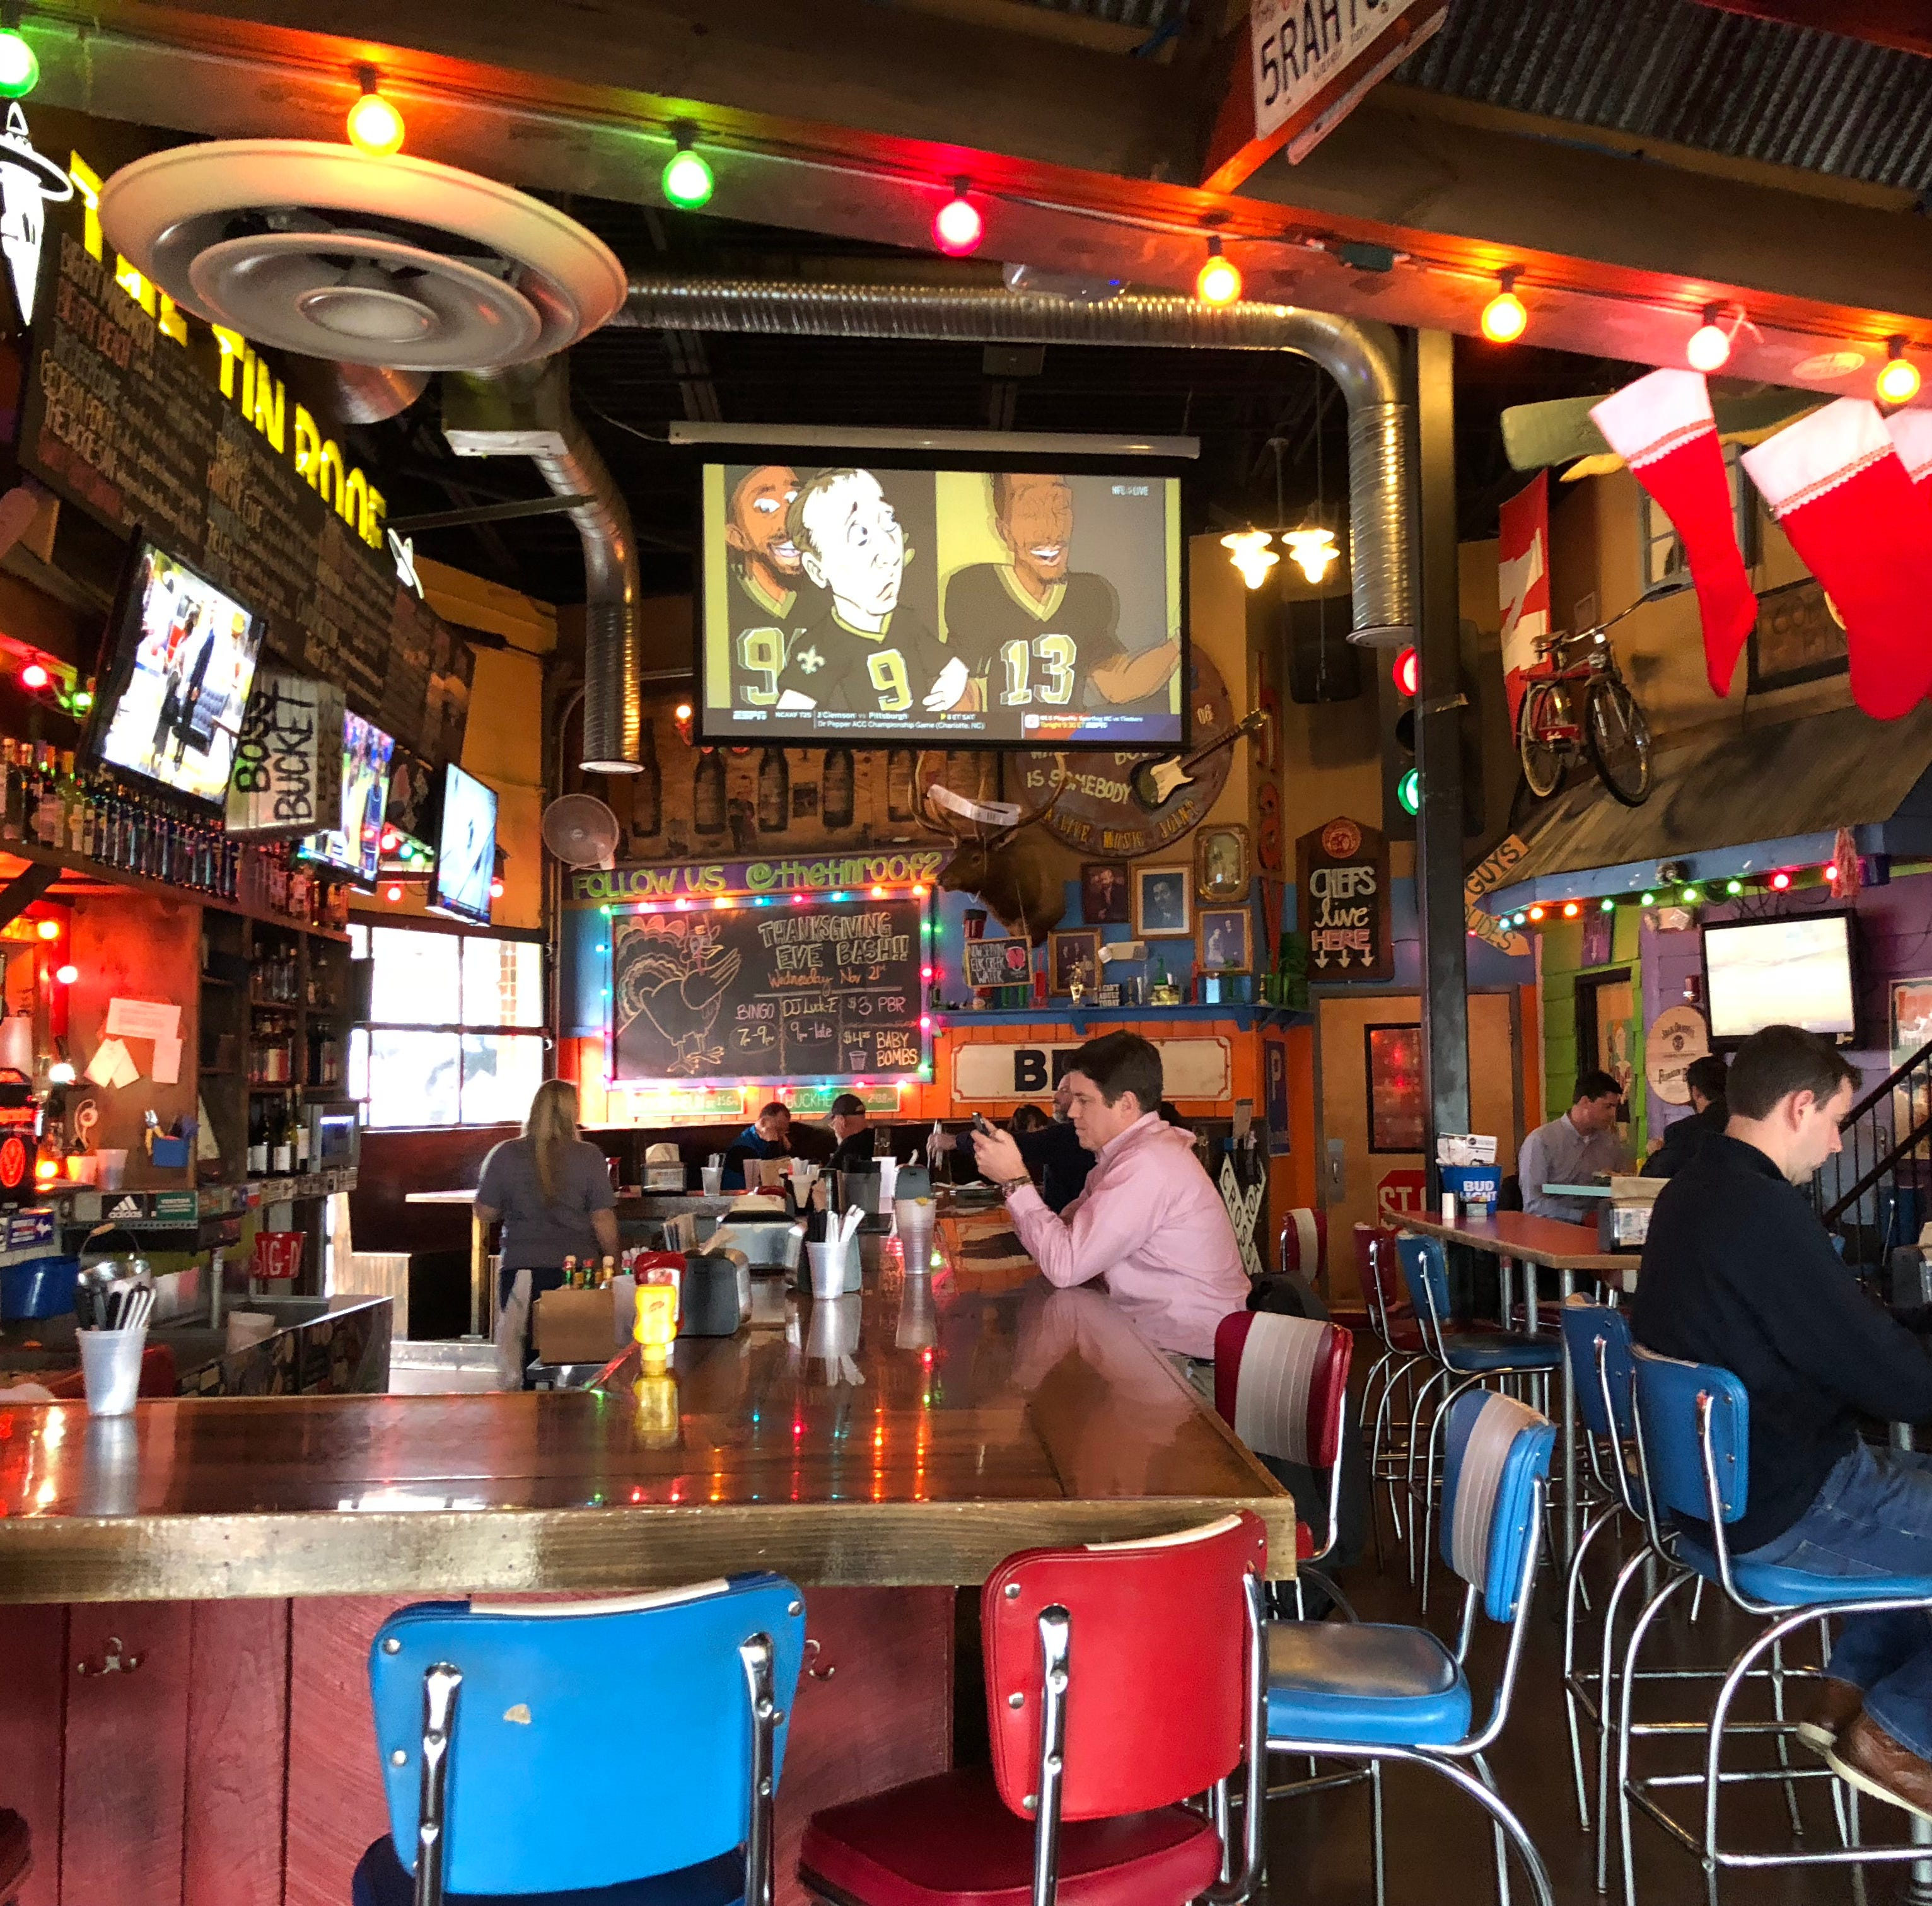 The interior space at Tin Roof 2 is festive and...